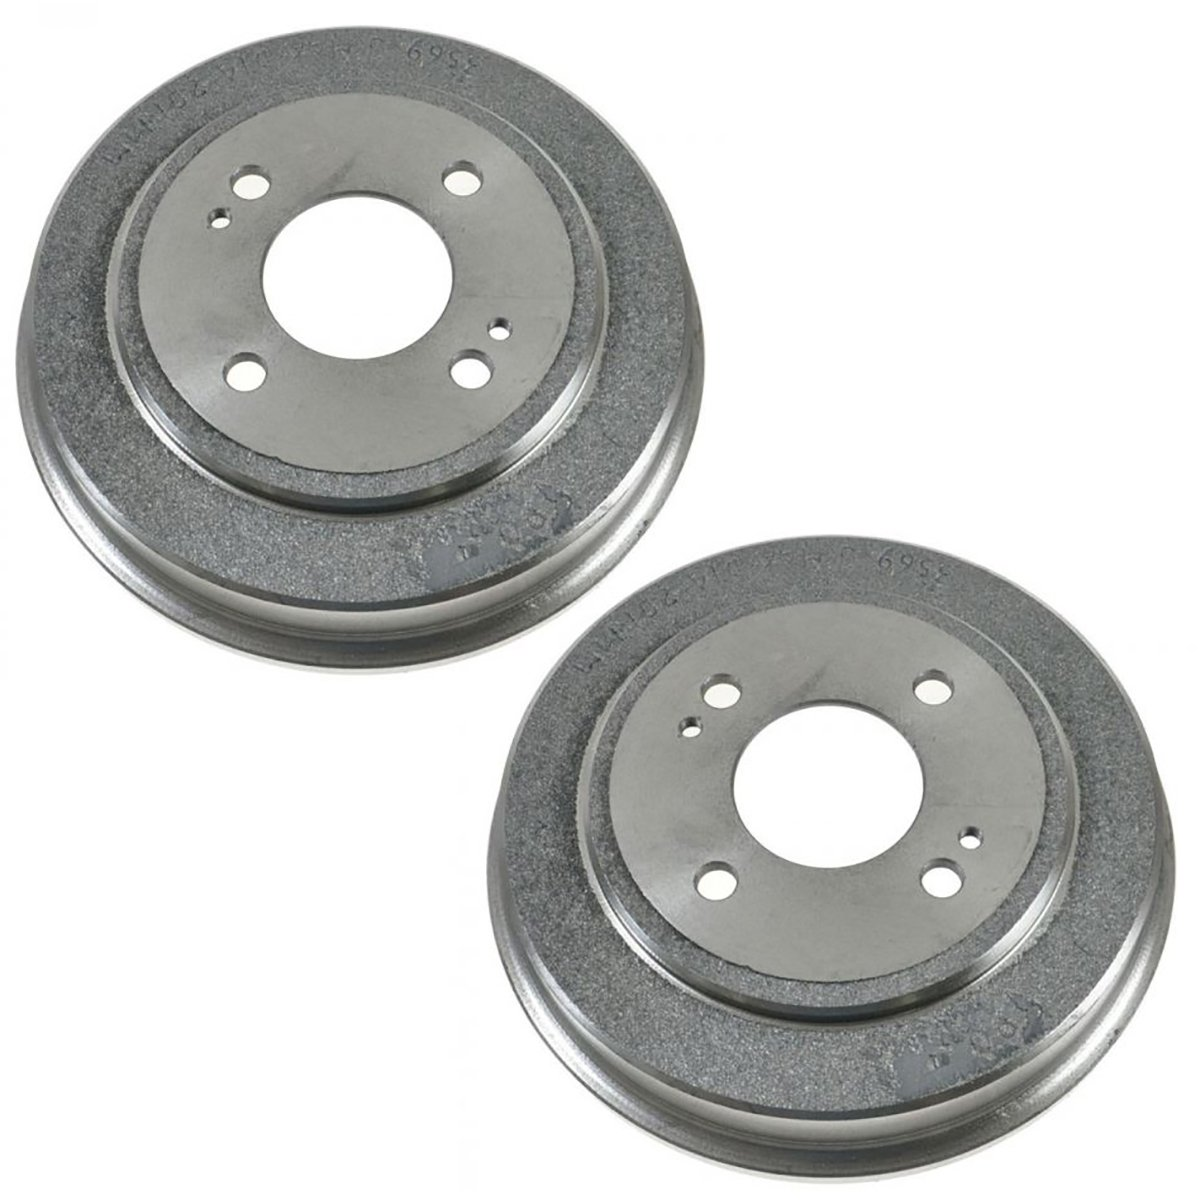 Rear Brake Drum Left LH /& Right RH Pair Set of 2 for Honda Accord Civic FIT